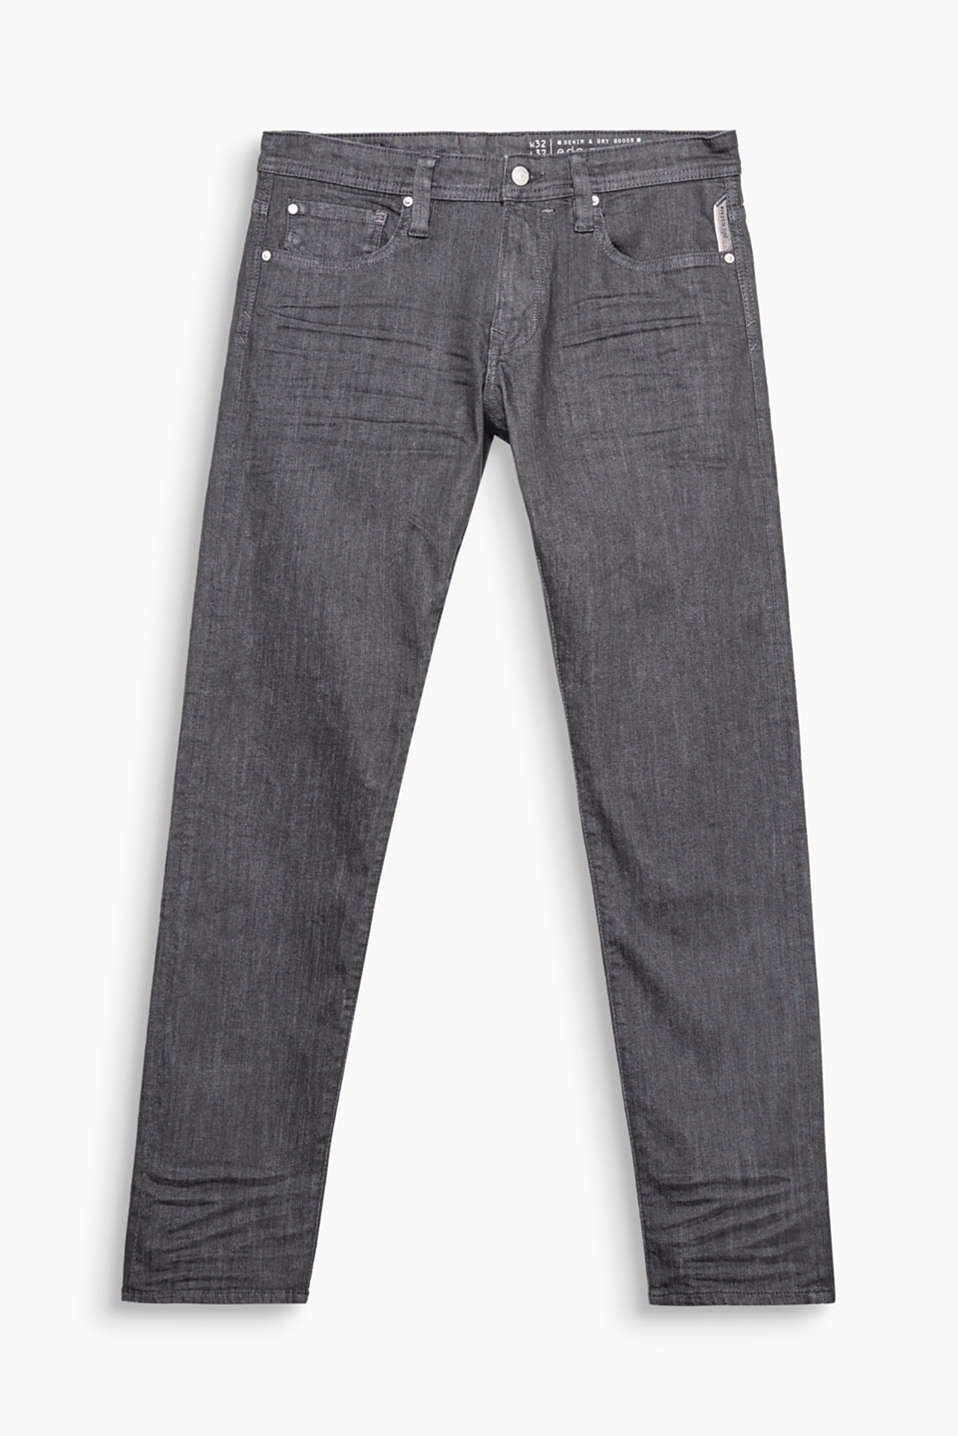 A denim classic: slightly melange five pocket jeans with added stretch for comfort and garment-washed effects.